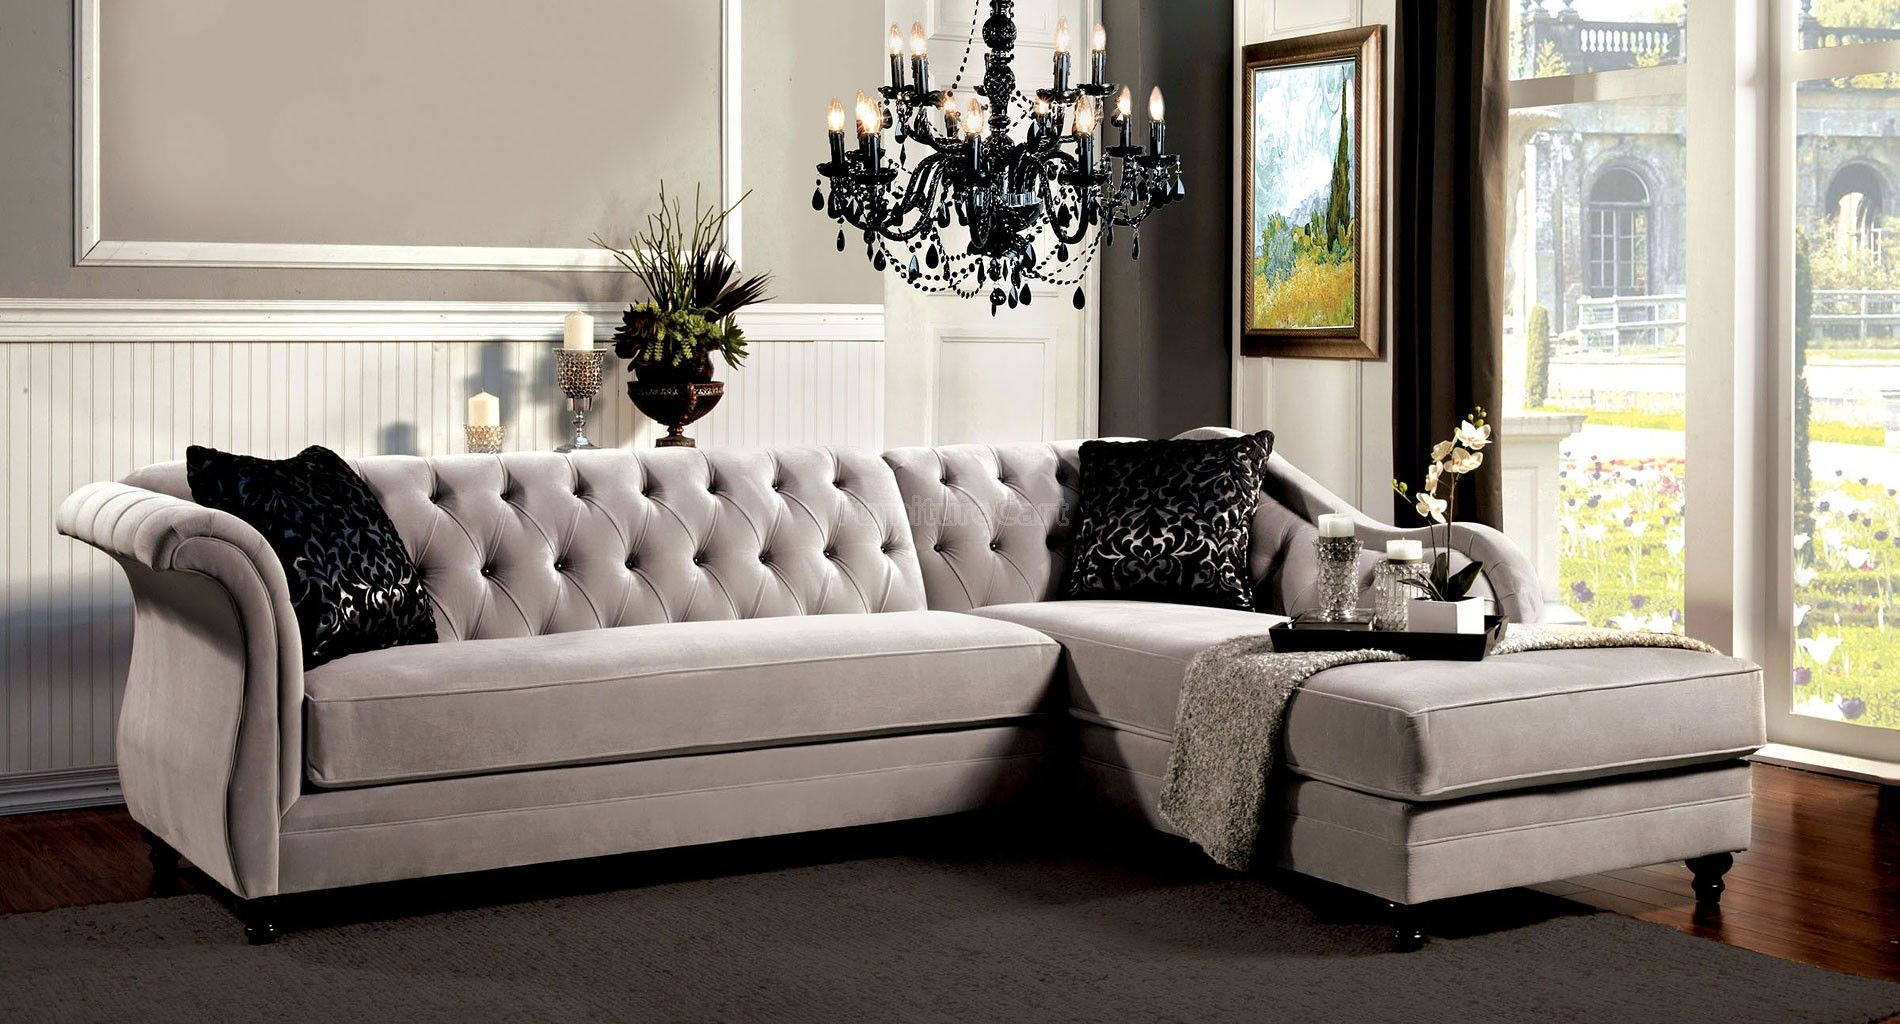 Sofa In French Meaning Rotterdam Sectional Sofa Sm2261 This Beautiful Sectional Sofa Is A